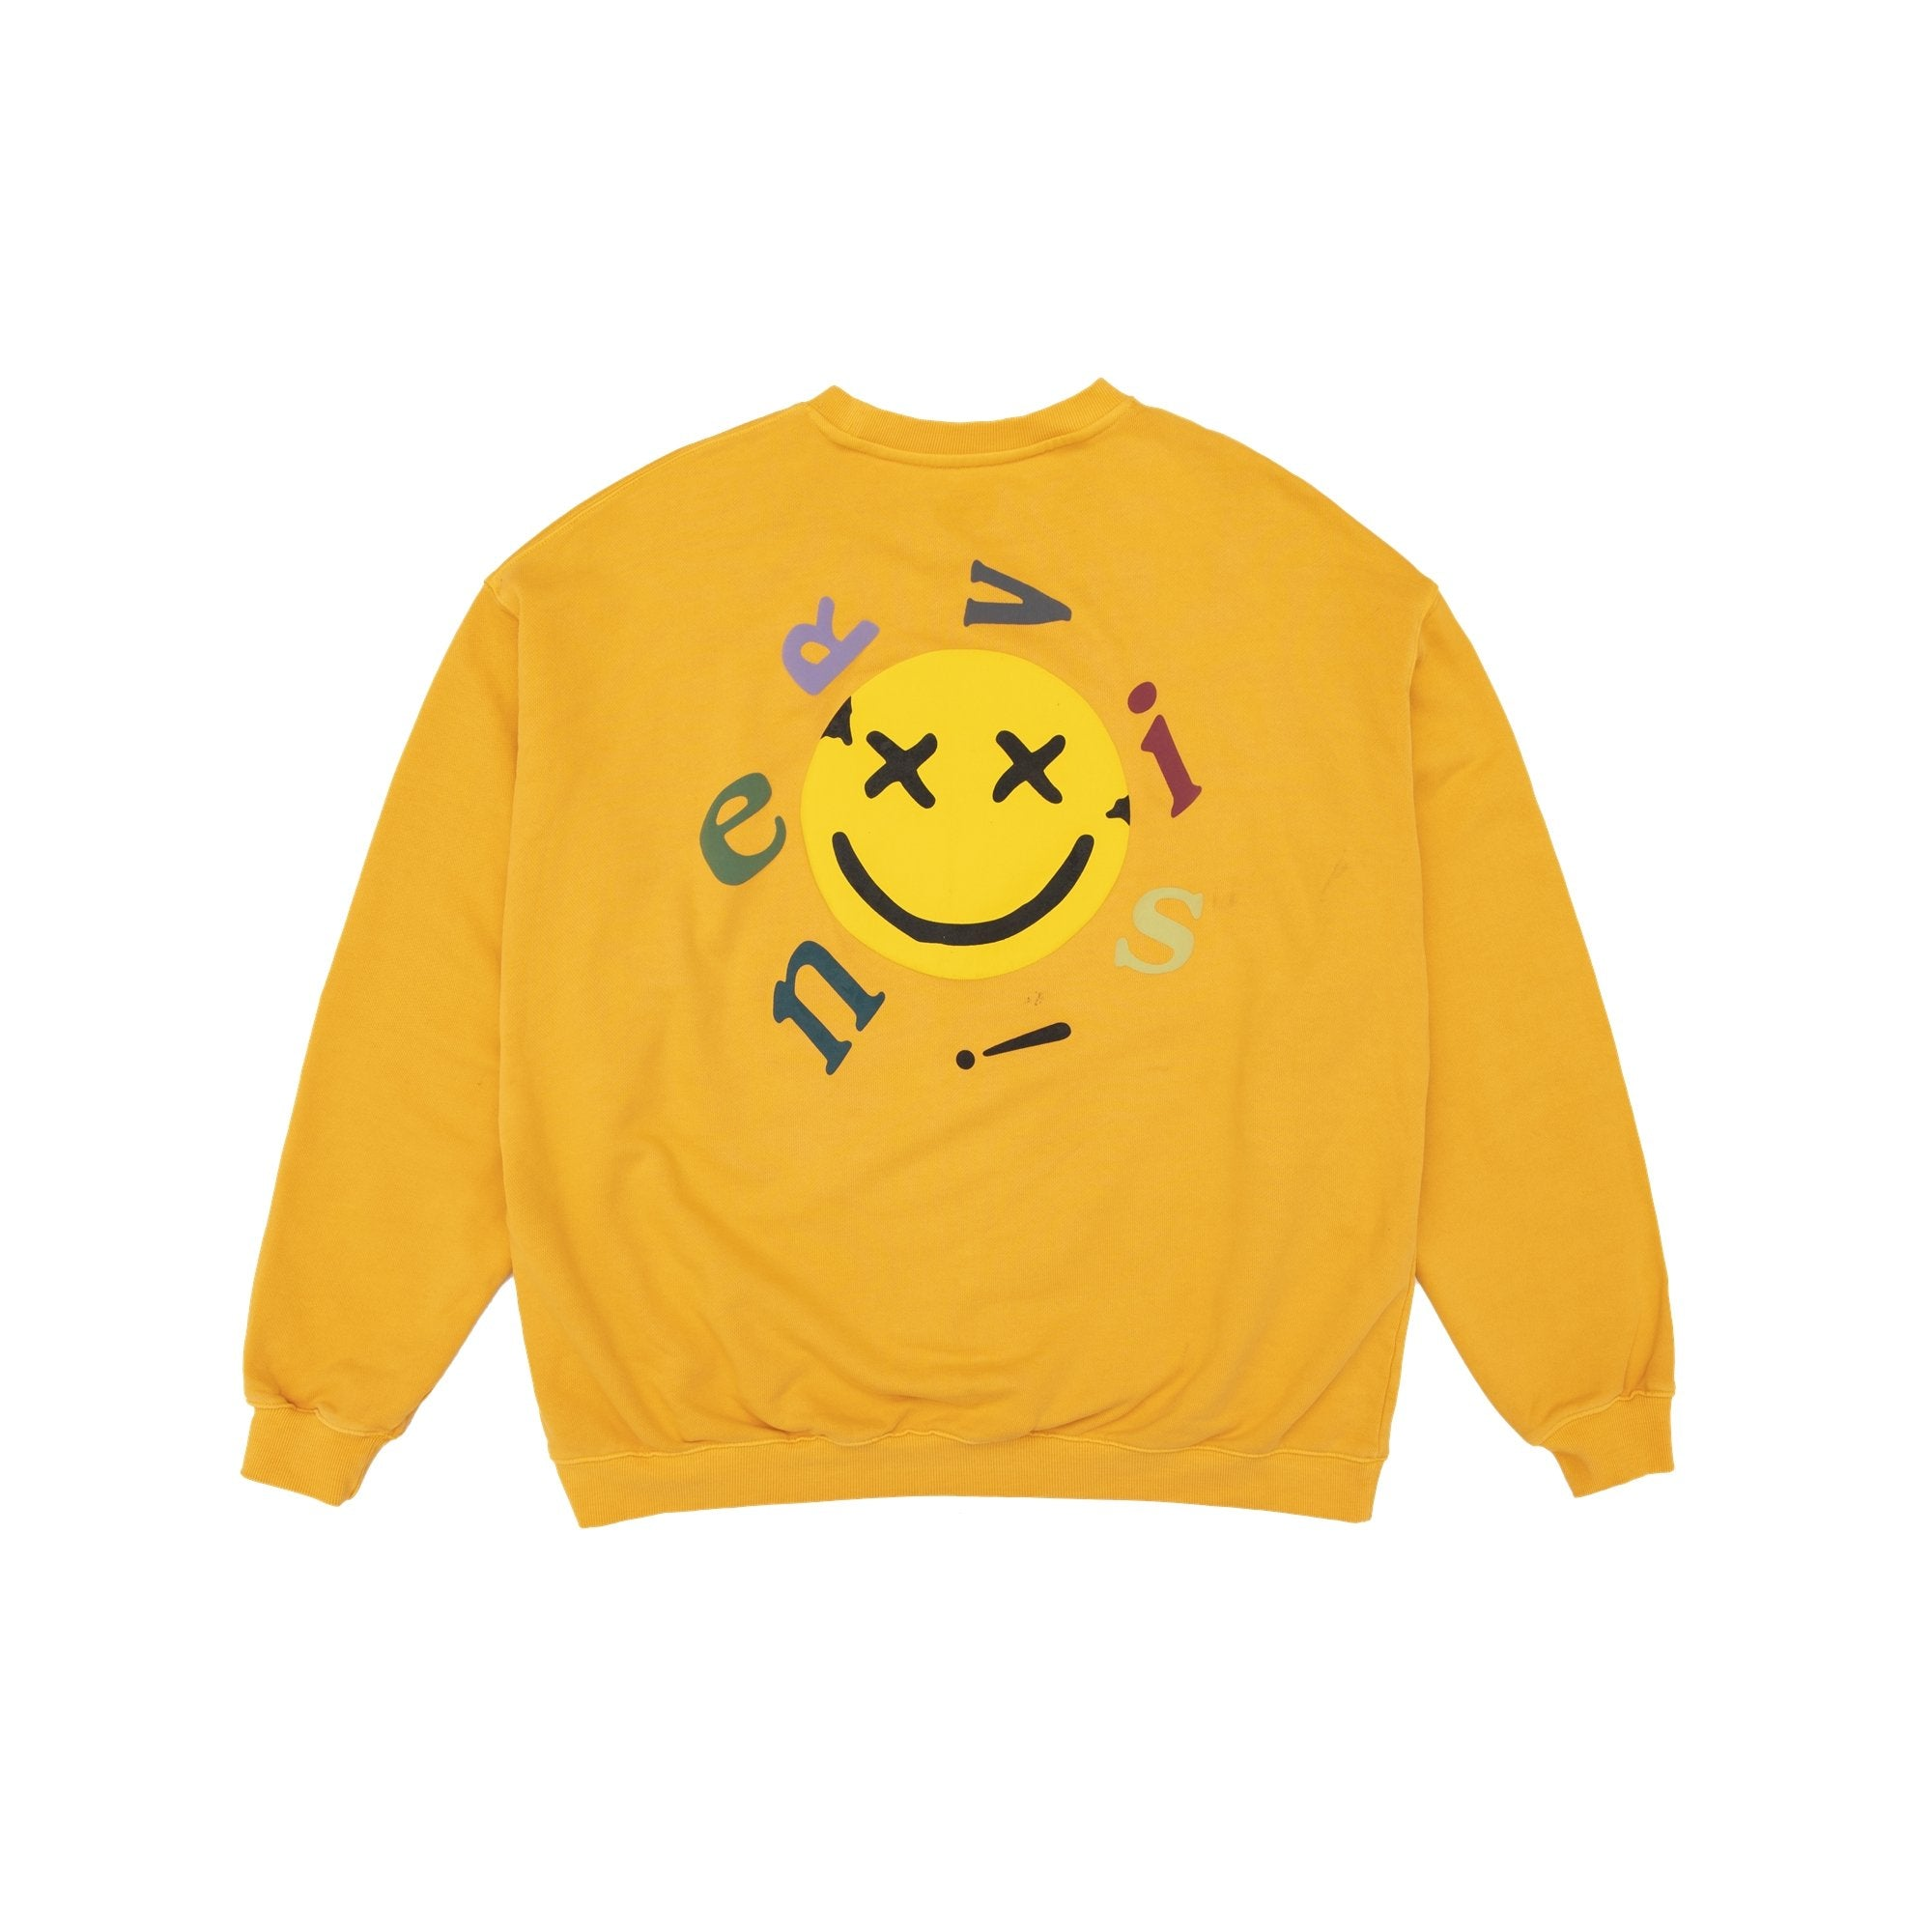 MAYHEM Nervis Yellow Smile Puff-Print Sweater | MADA IN CHINA